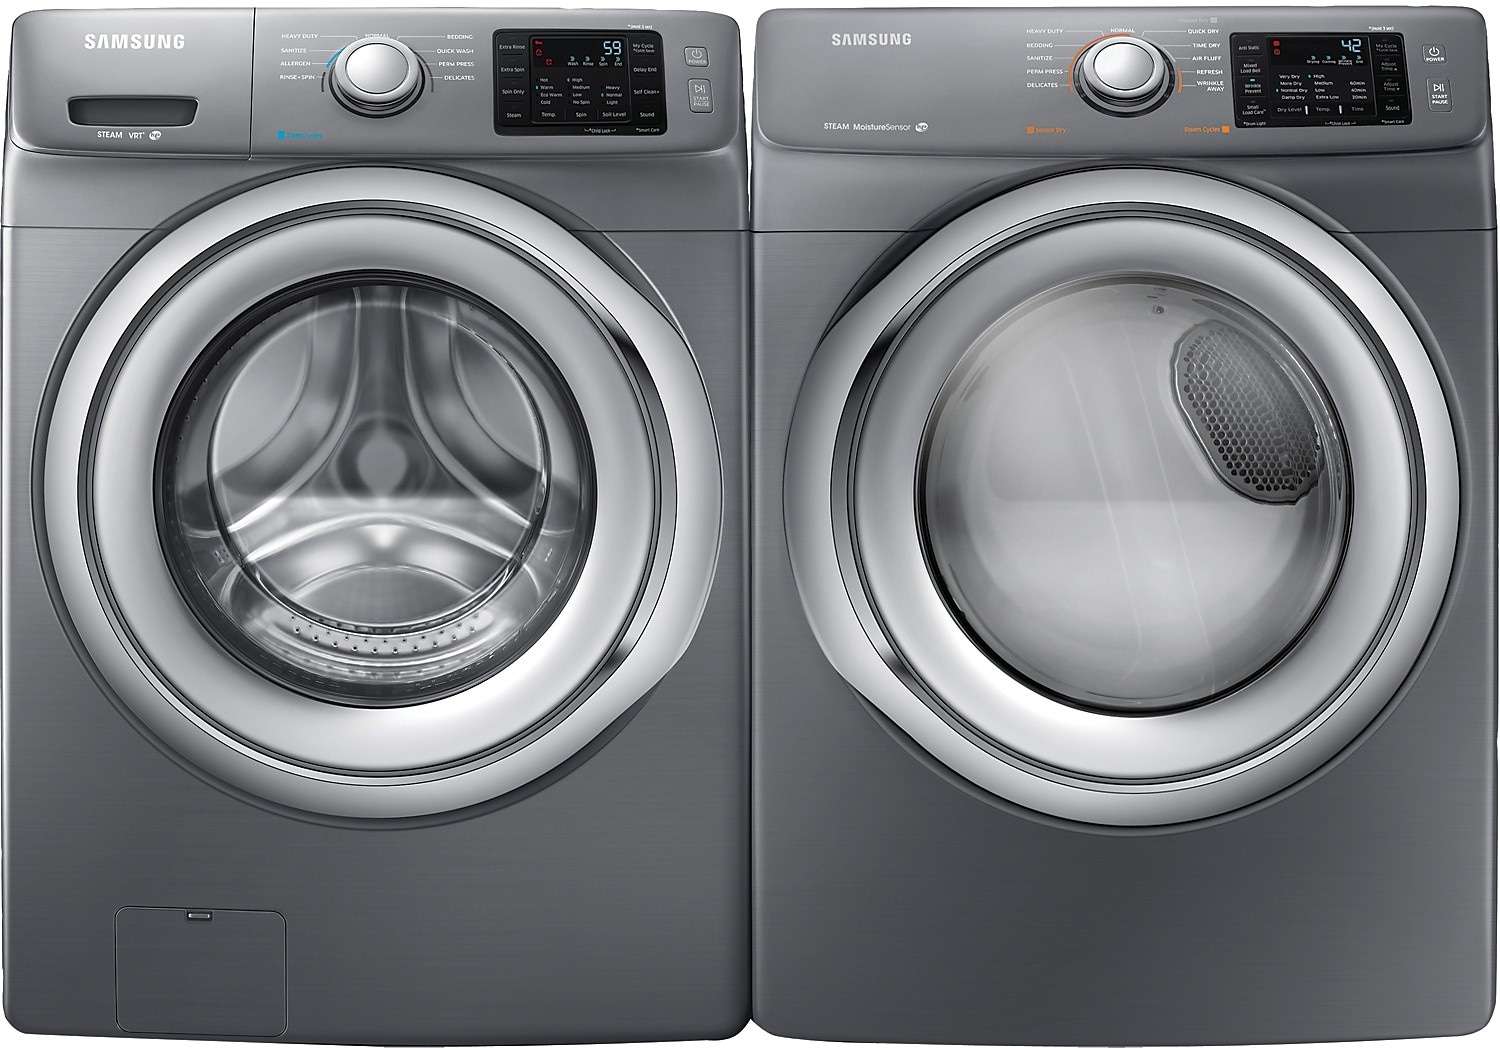 Washers and Dryers - Samsung 4.8 Cu. Ft. Front-Load Washer and 7.5 Cu. Ft. Electric Dryer - Platinum